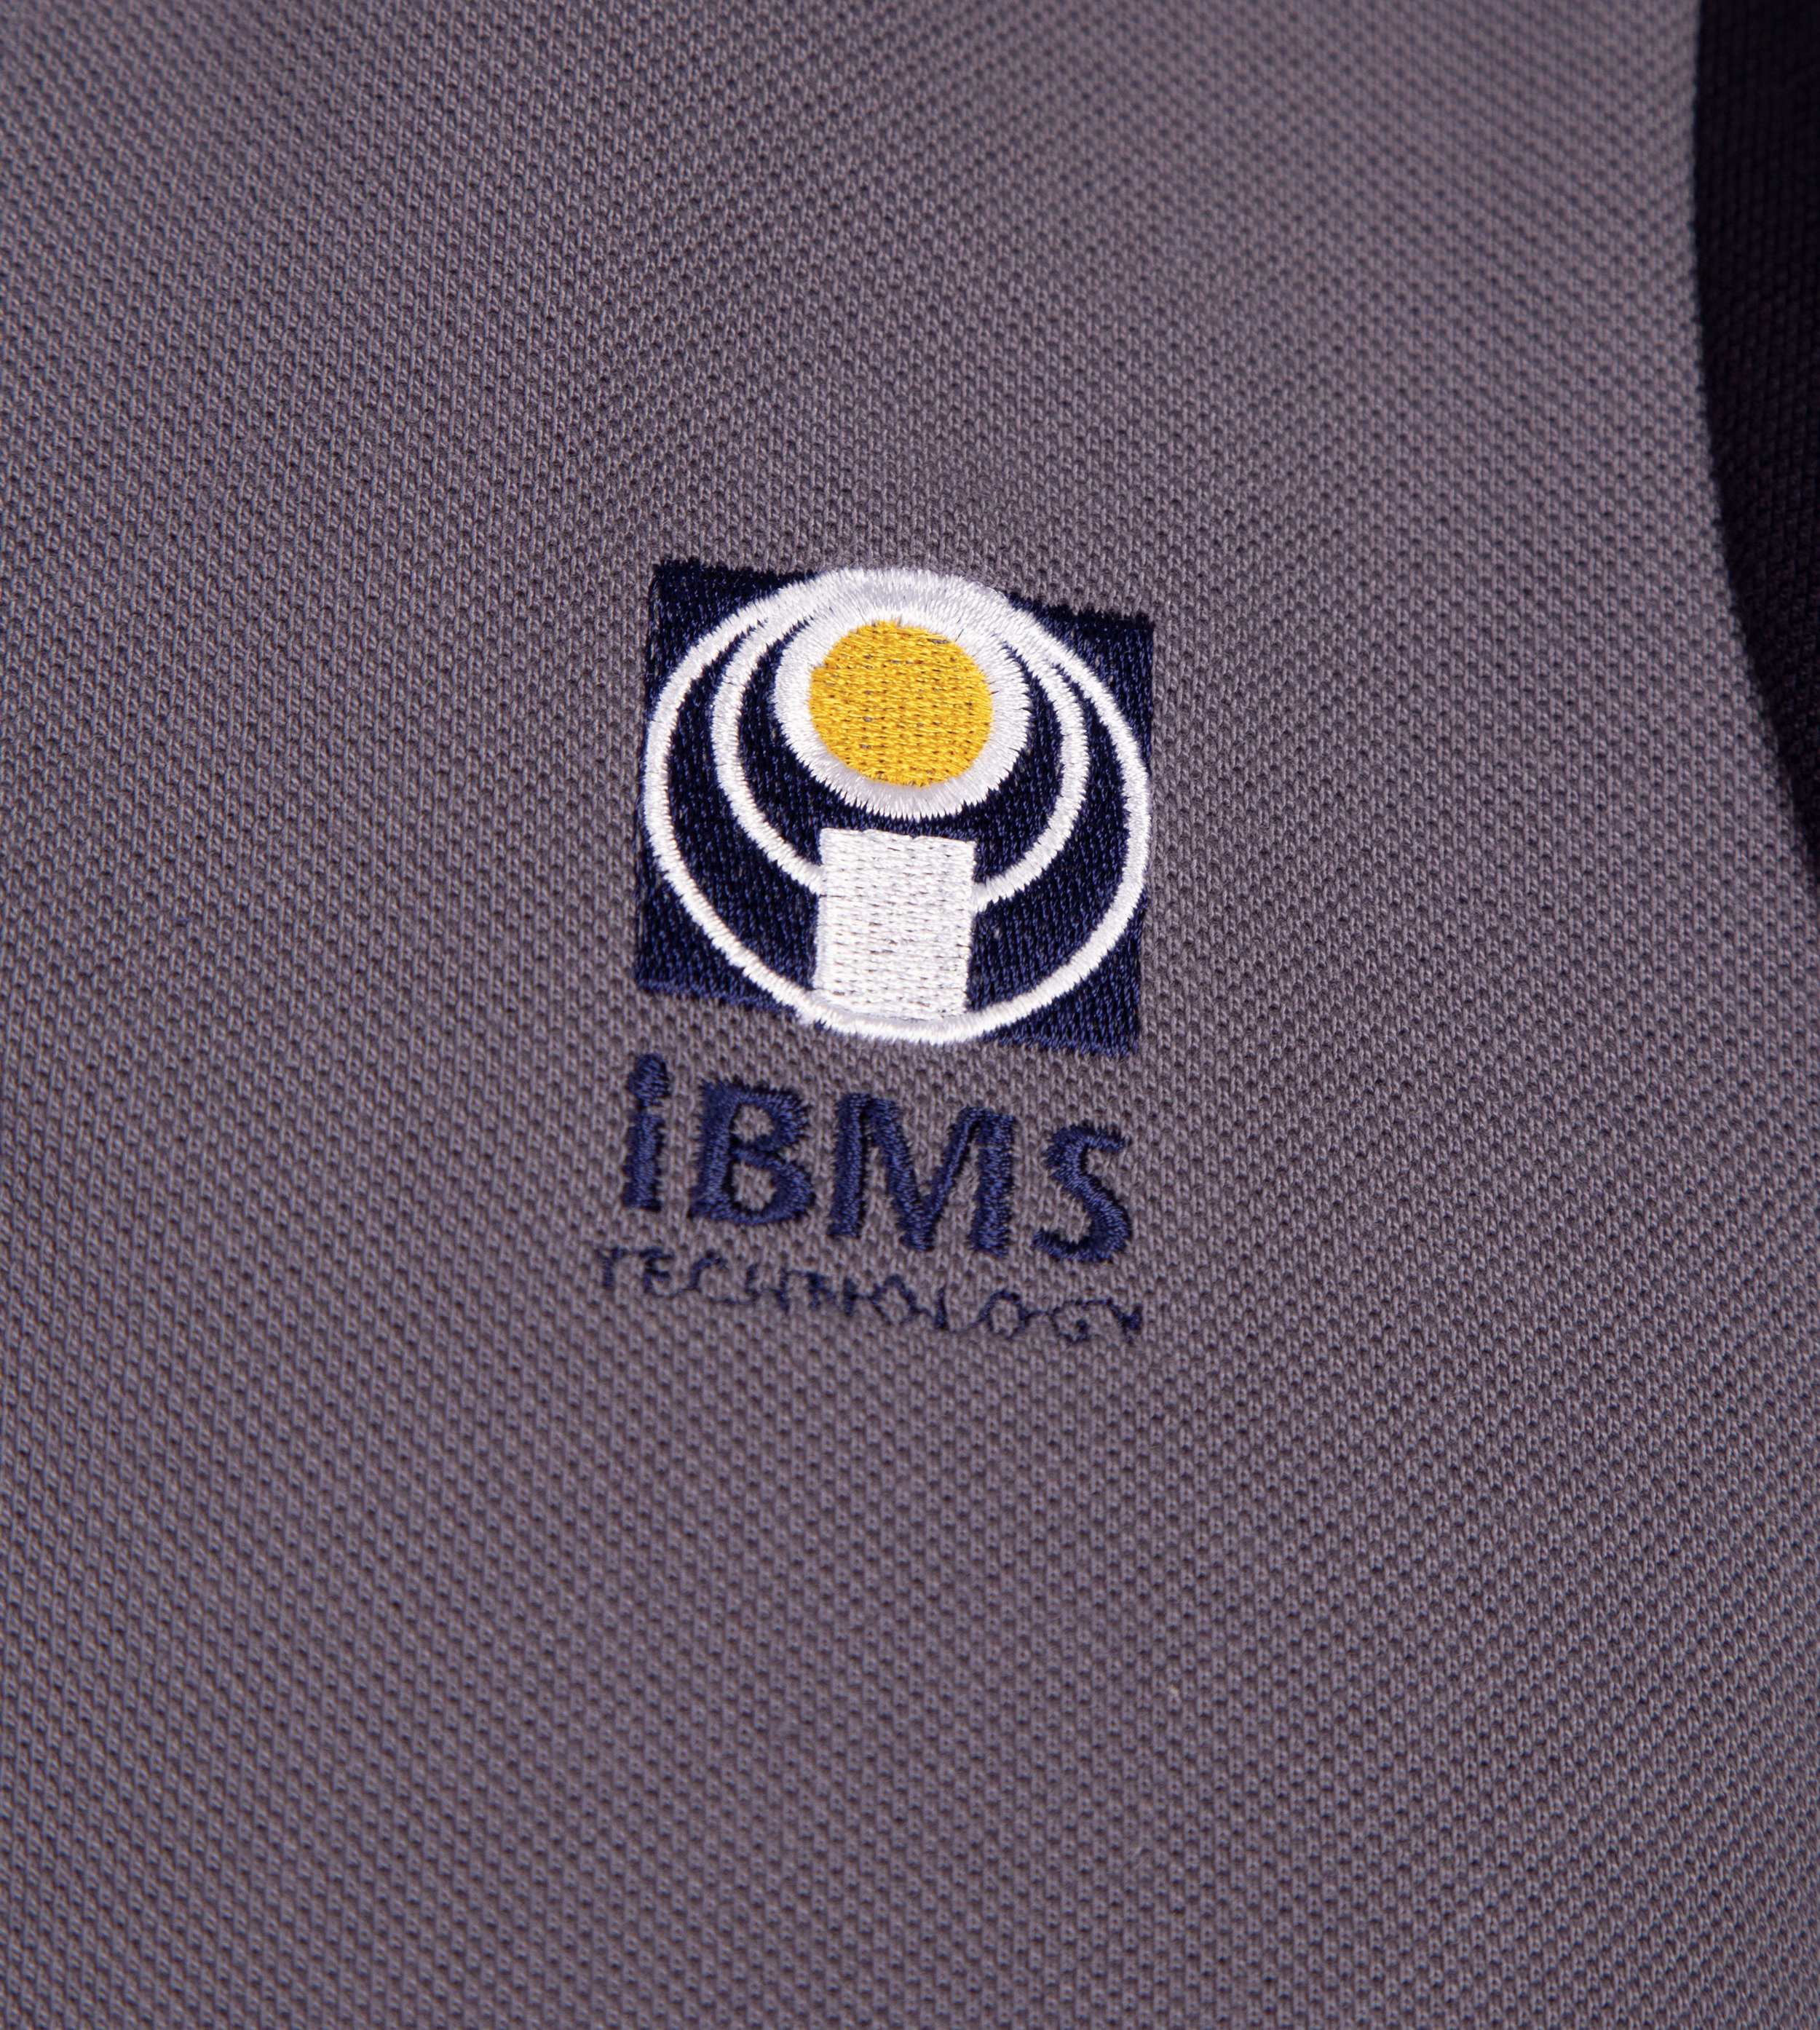 Tailored Projects-Custom Shirt-Polo Shirt-IMBS- Embroidery.jpg